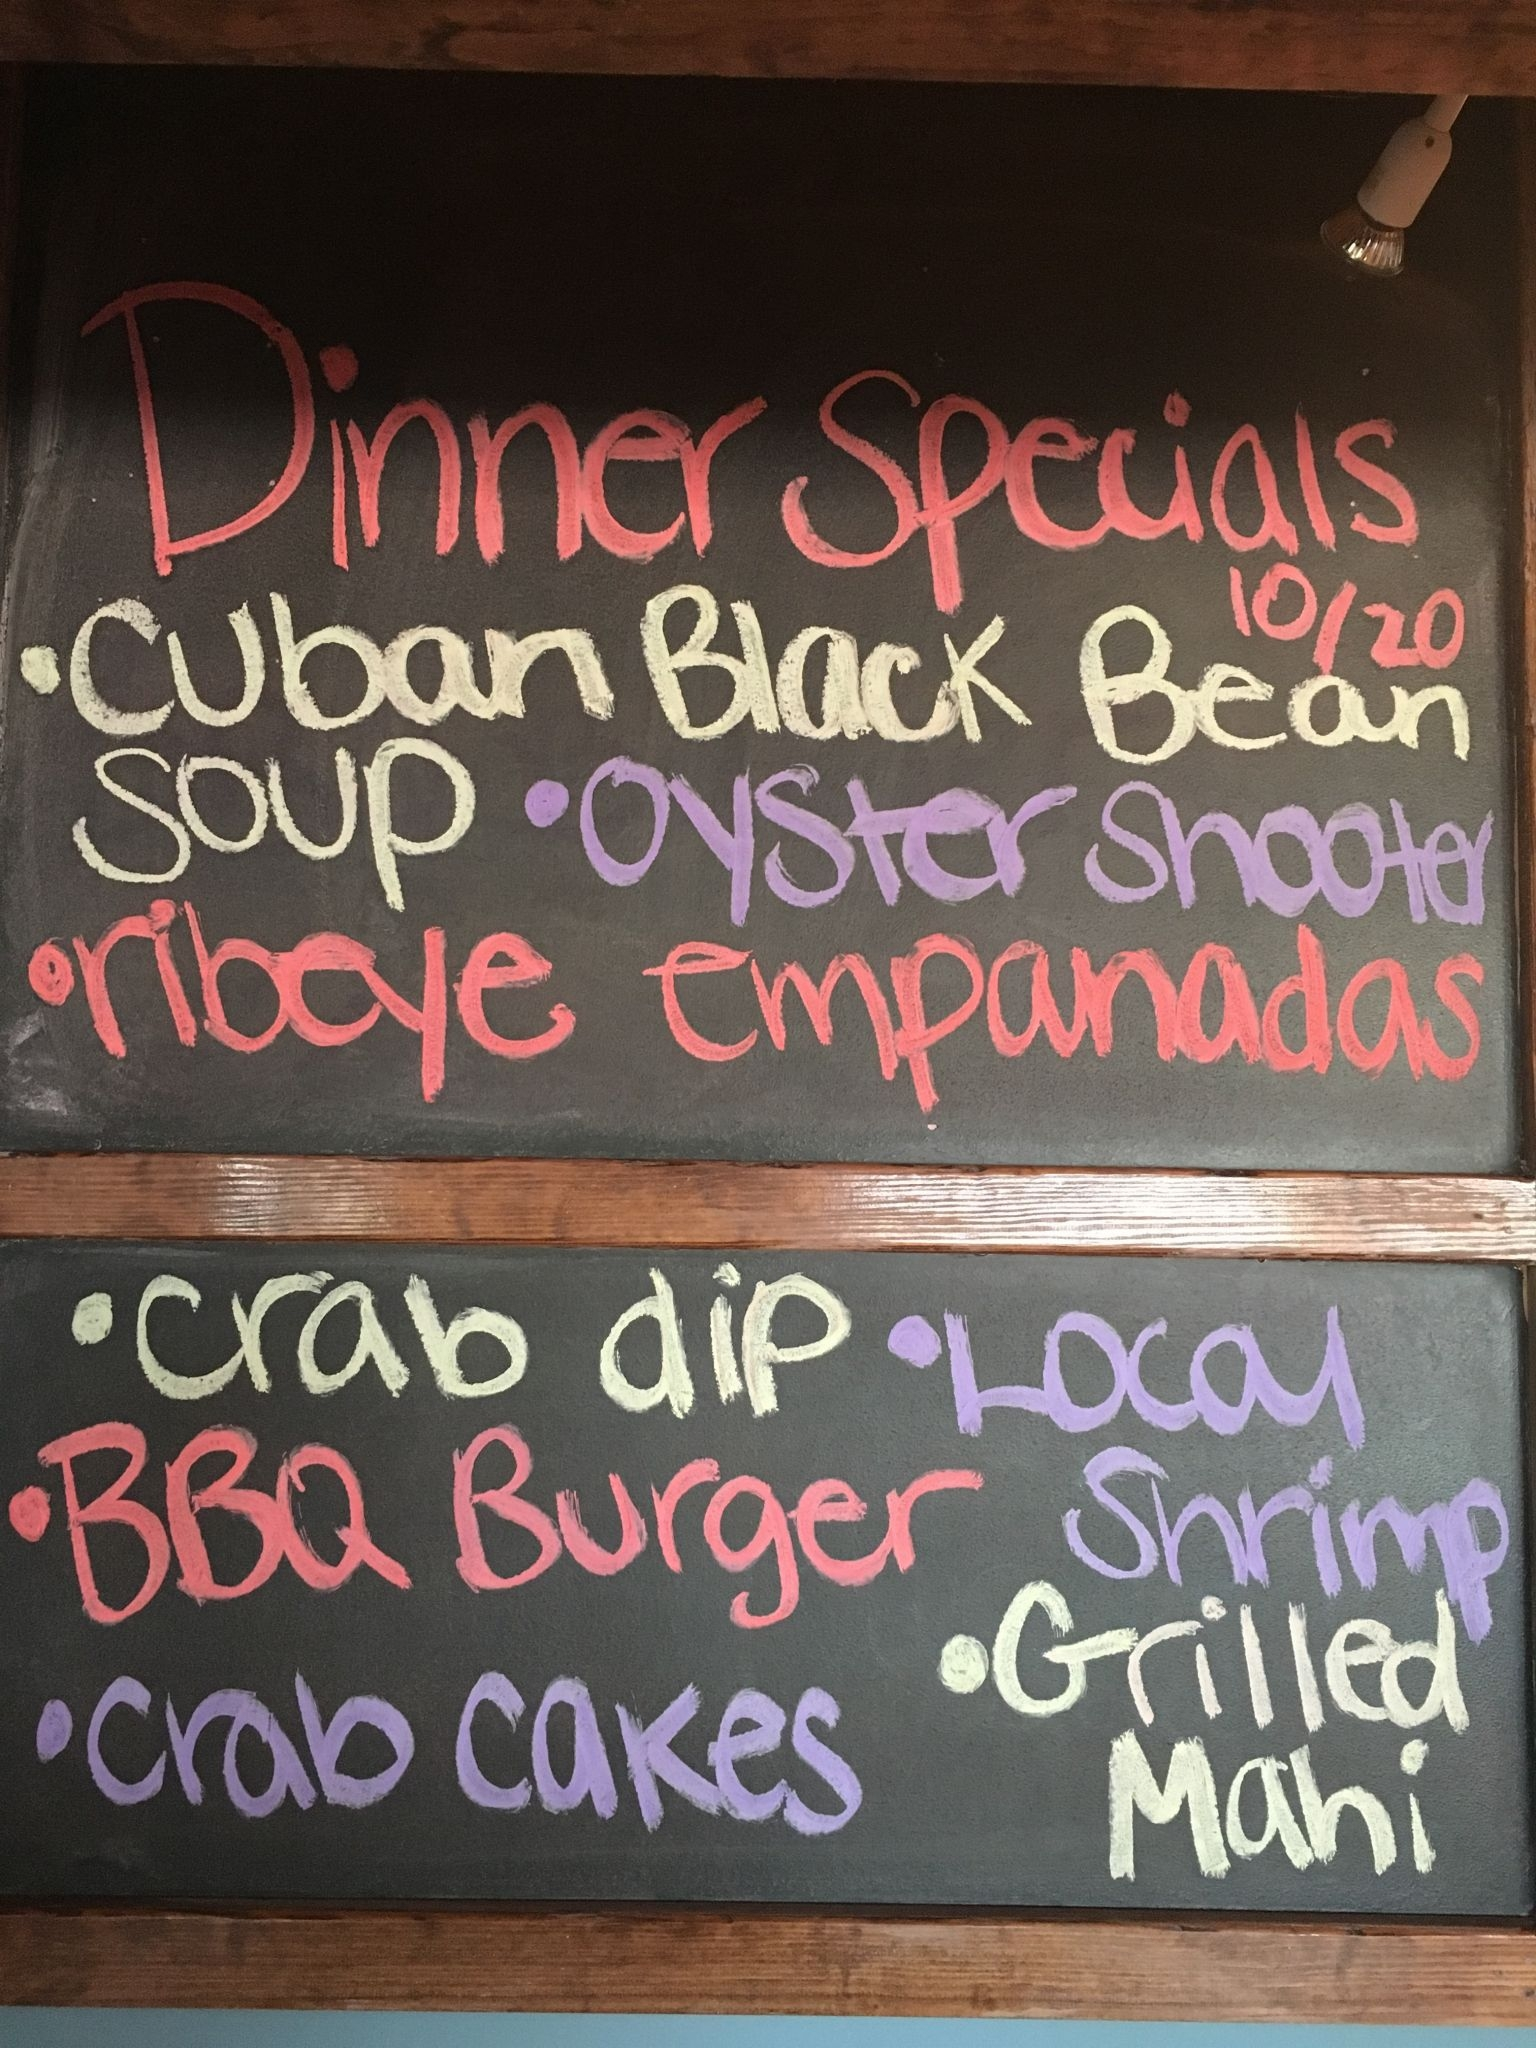 Beer Specials Thursday Dinner Specials Burger And Draft Beer 15 Blue Water Grill